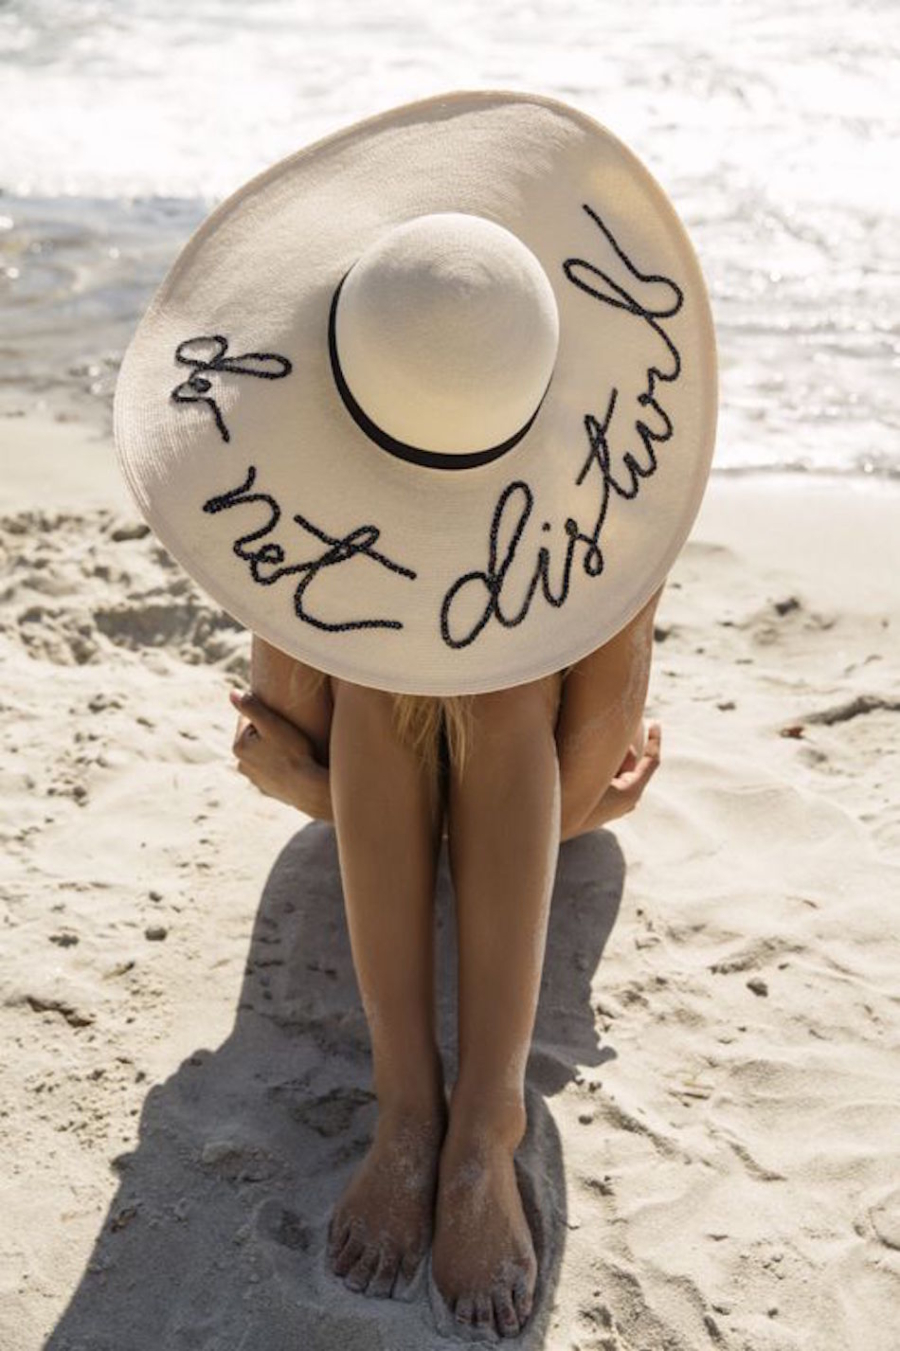 Slogan Straw Hat - Find Your New Perfect Beach Hat For Summer // NotJessFashion.com